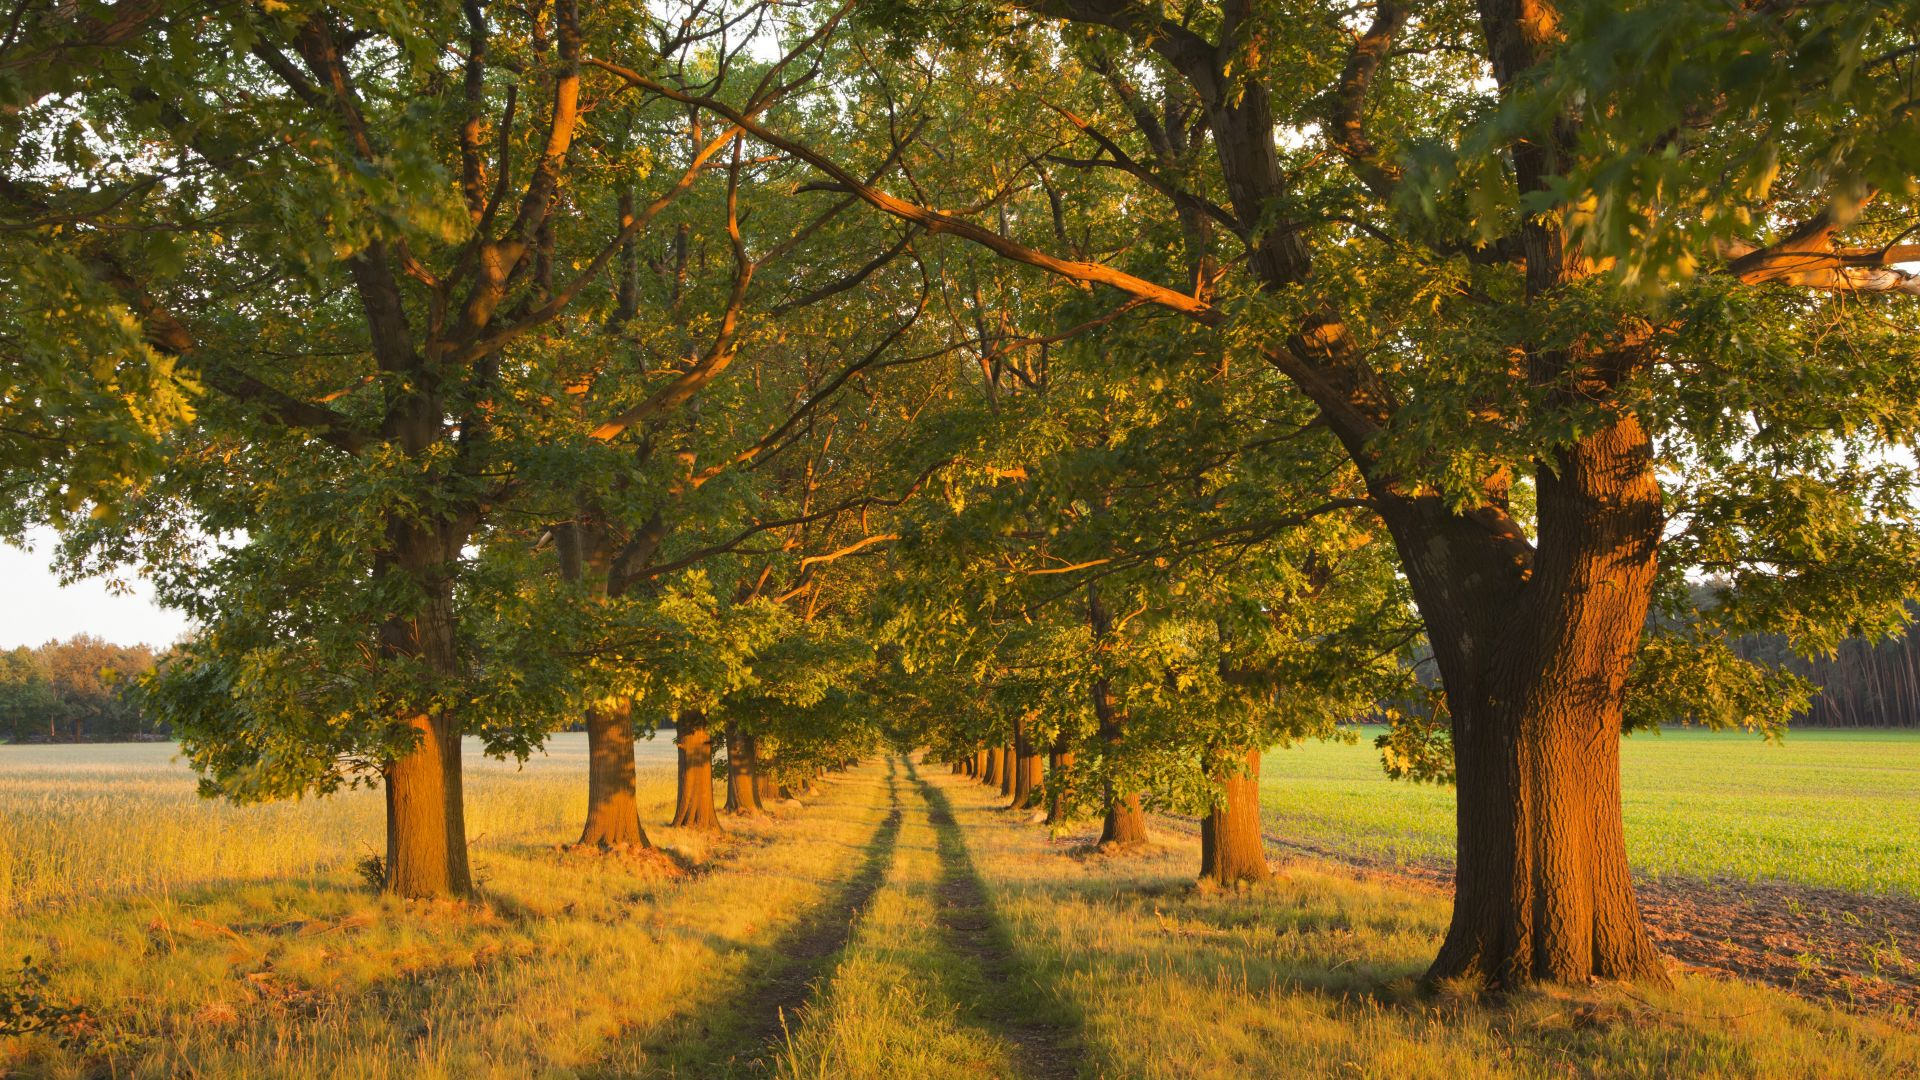 Brandenburg: Red Oak Avenue in Niederlausitz